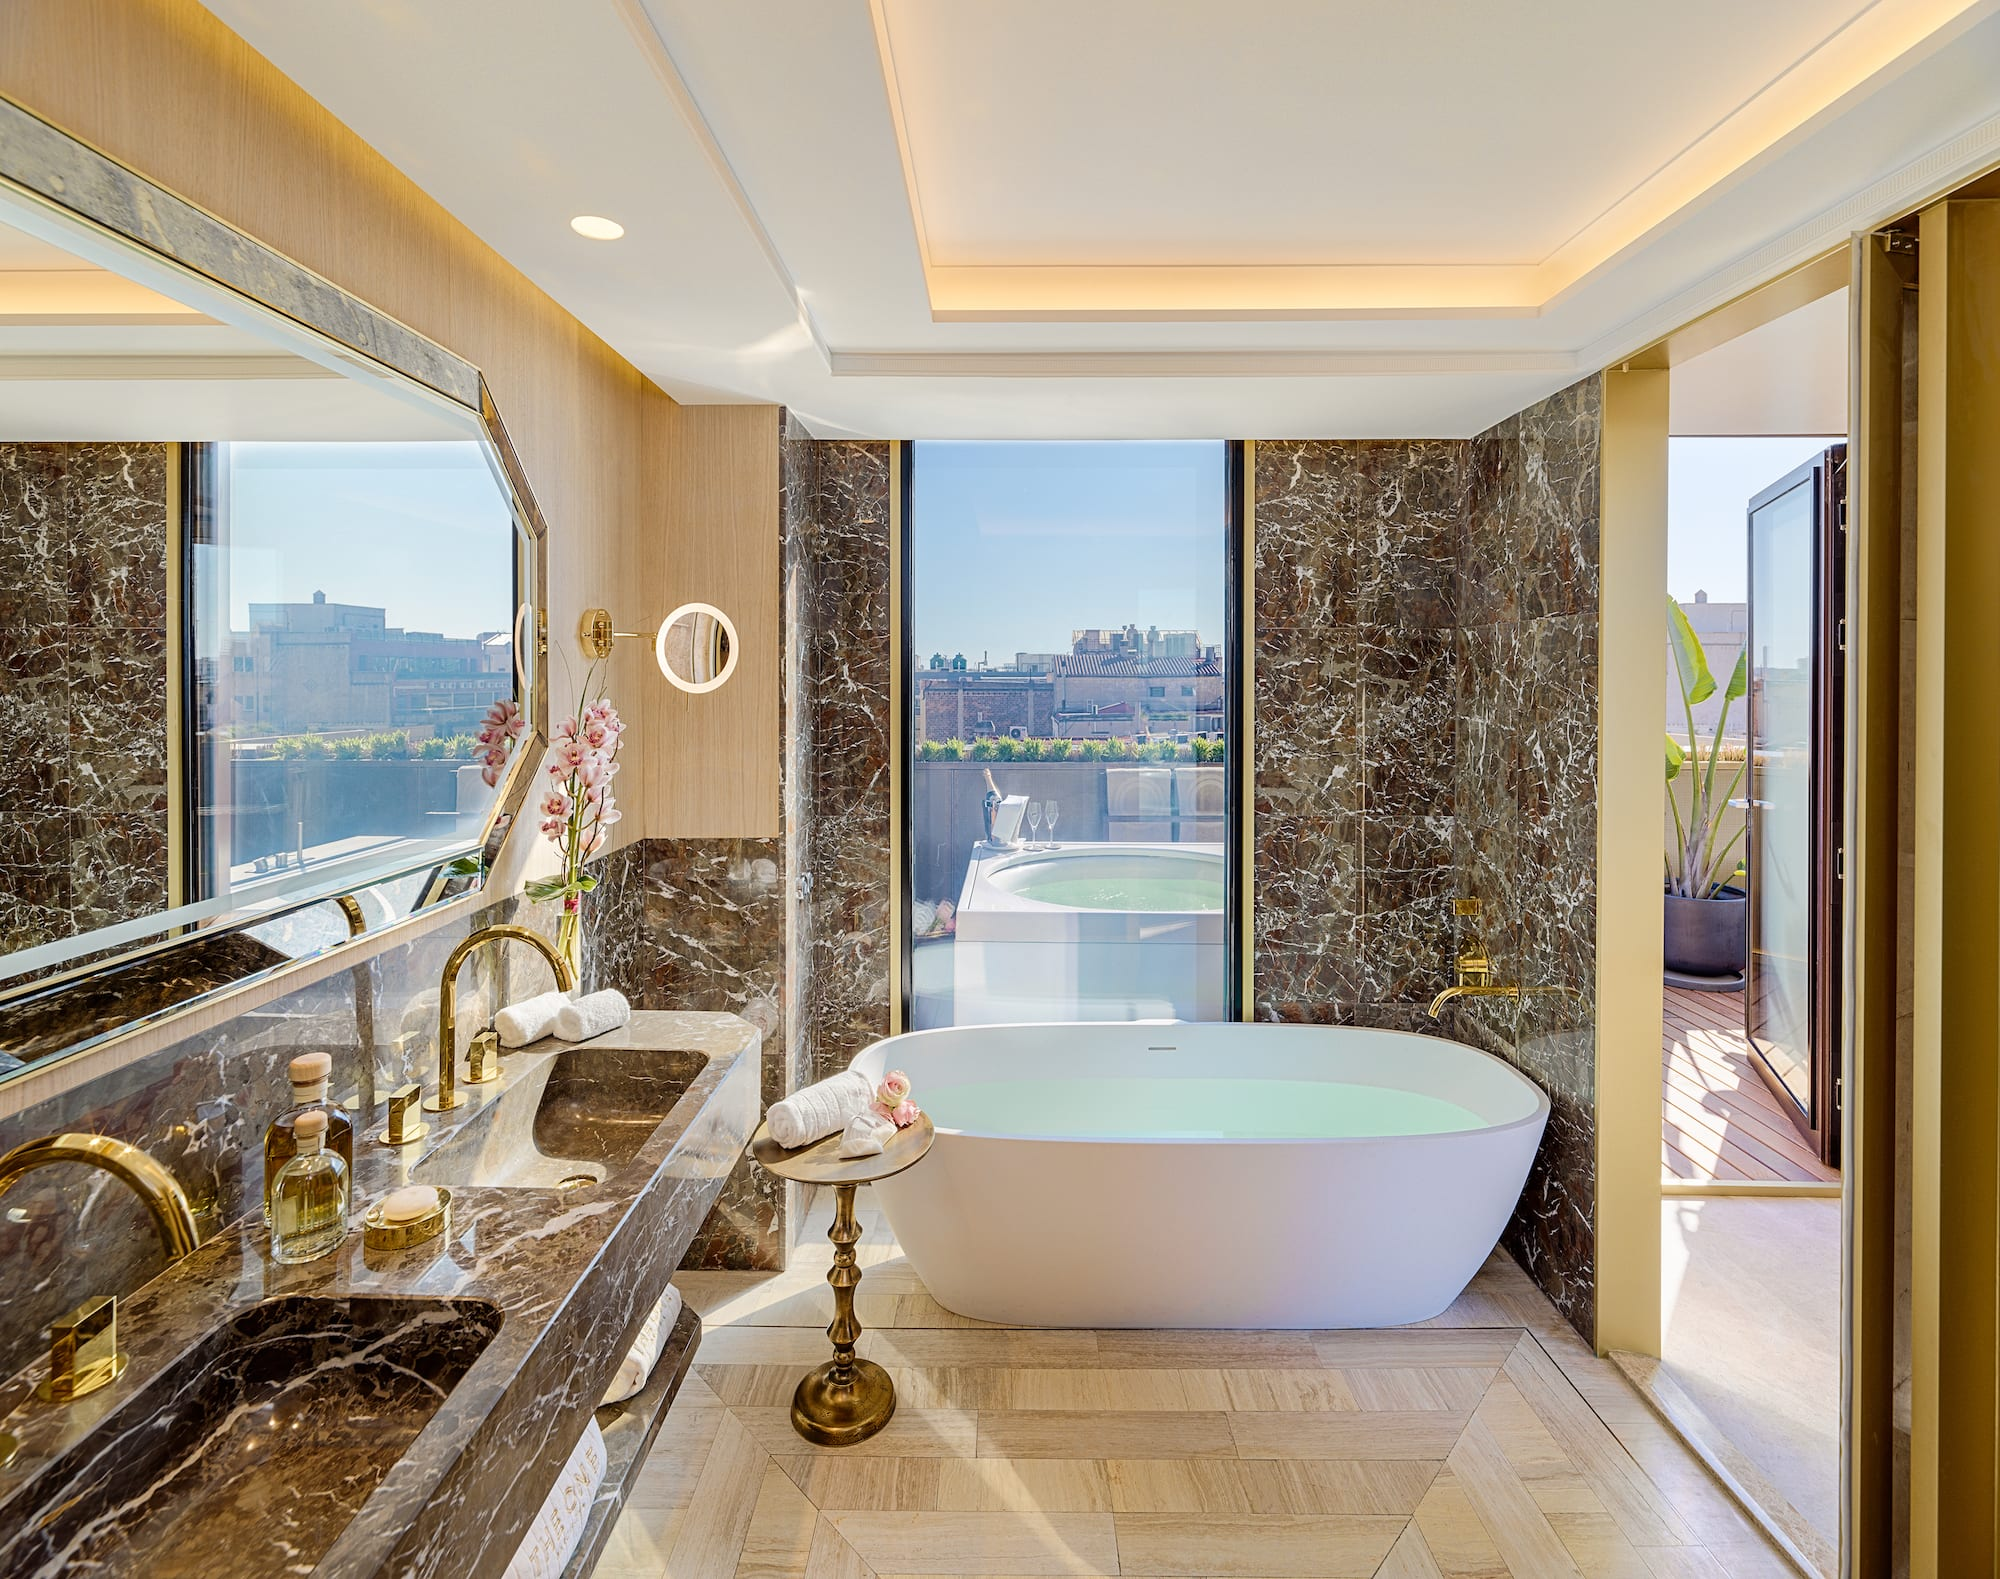 Rooms: Soul Seed Travel Guide: Best Luxury Spa & Boutique Hotels In Barcelona